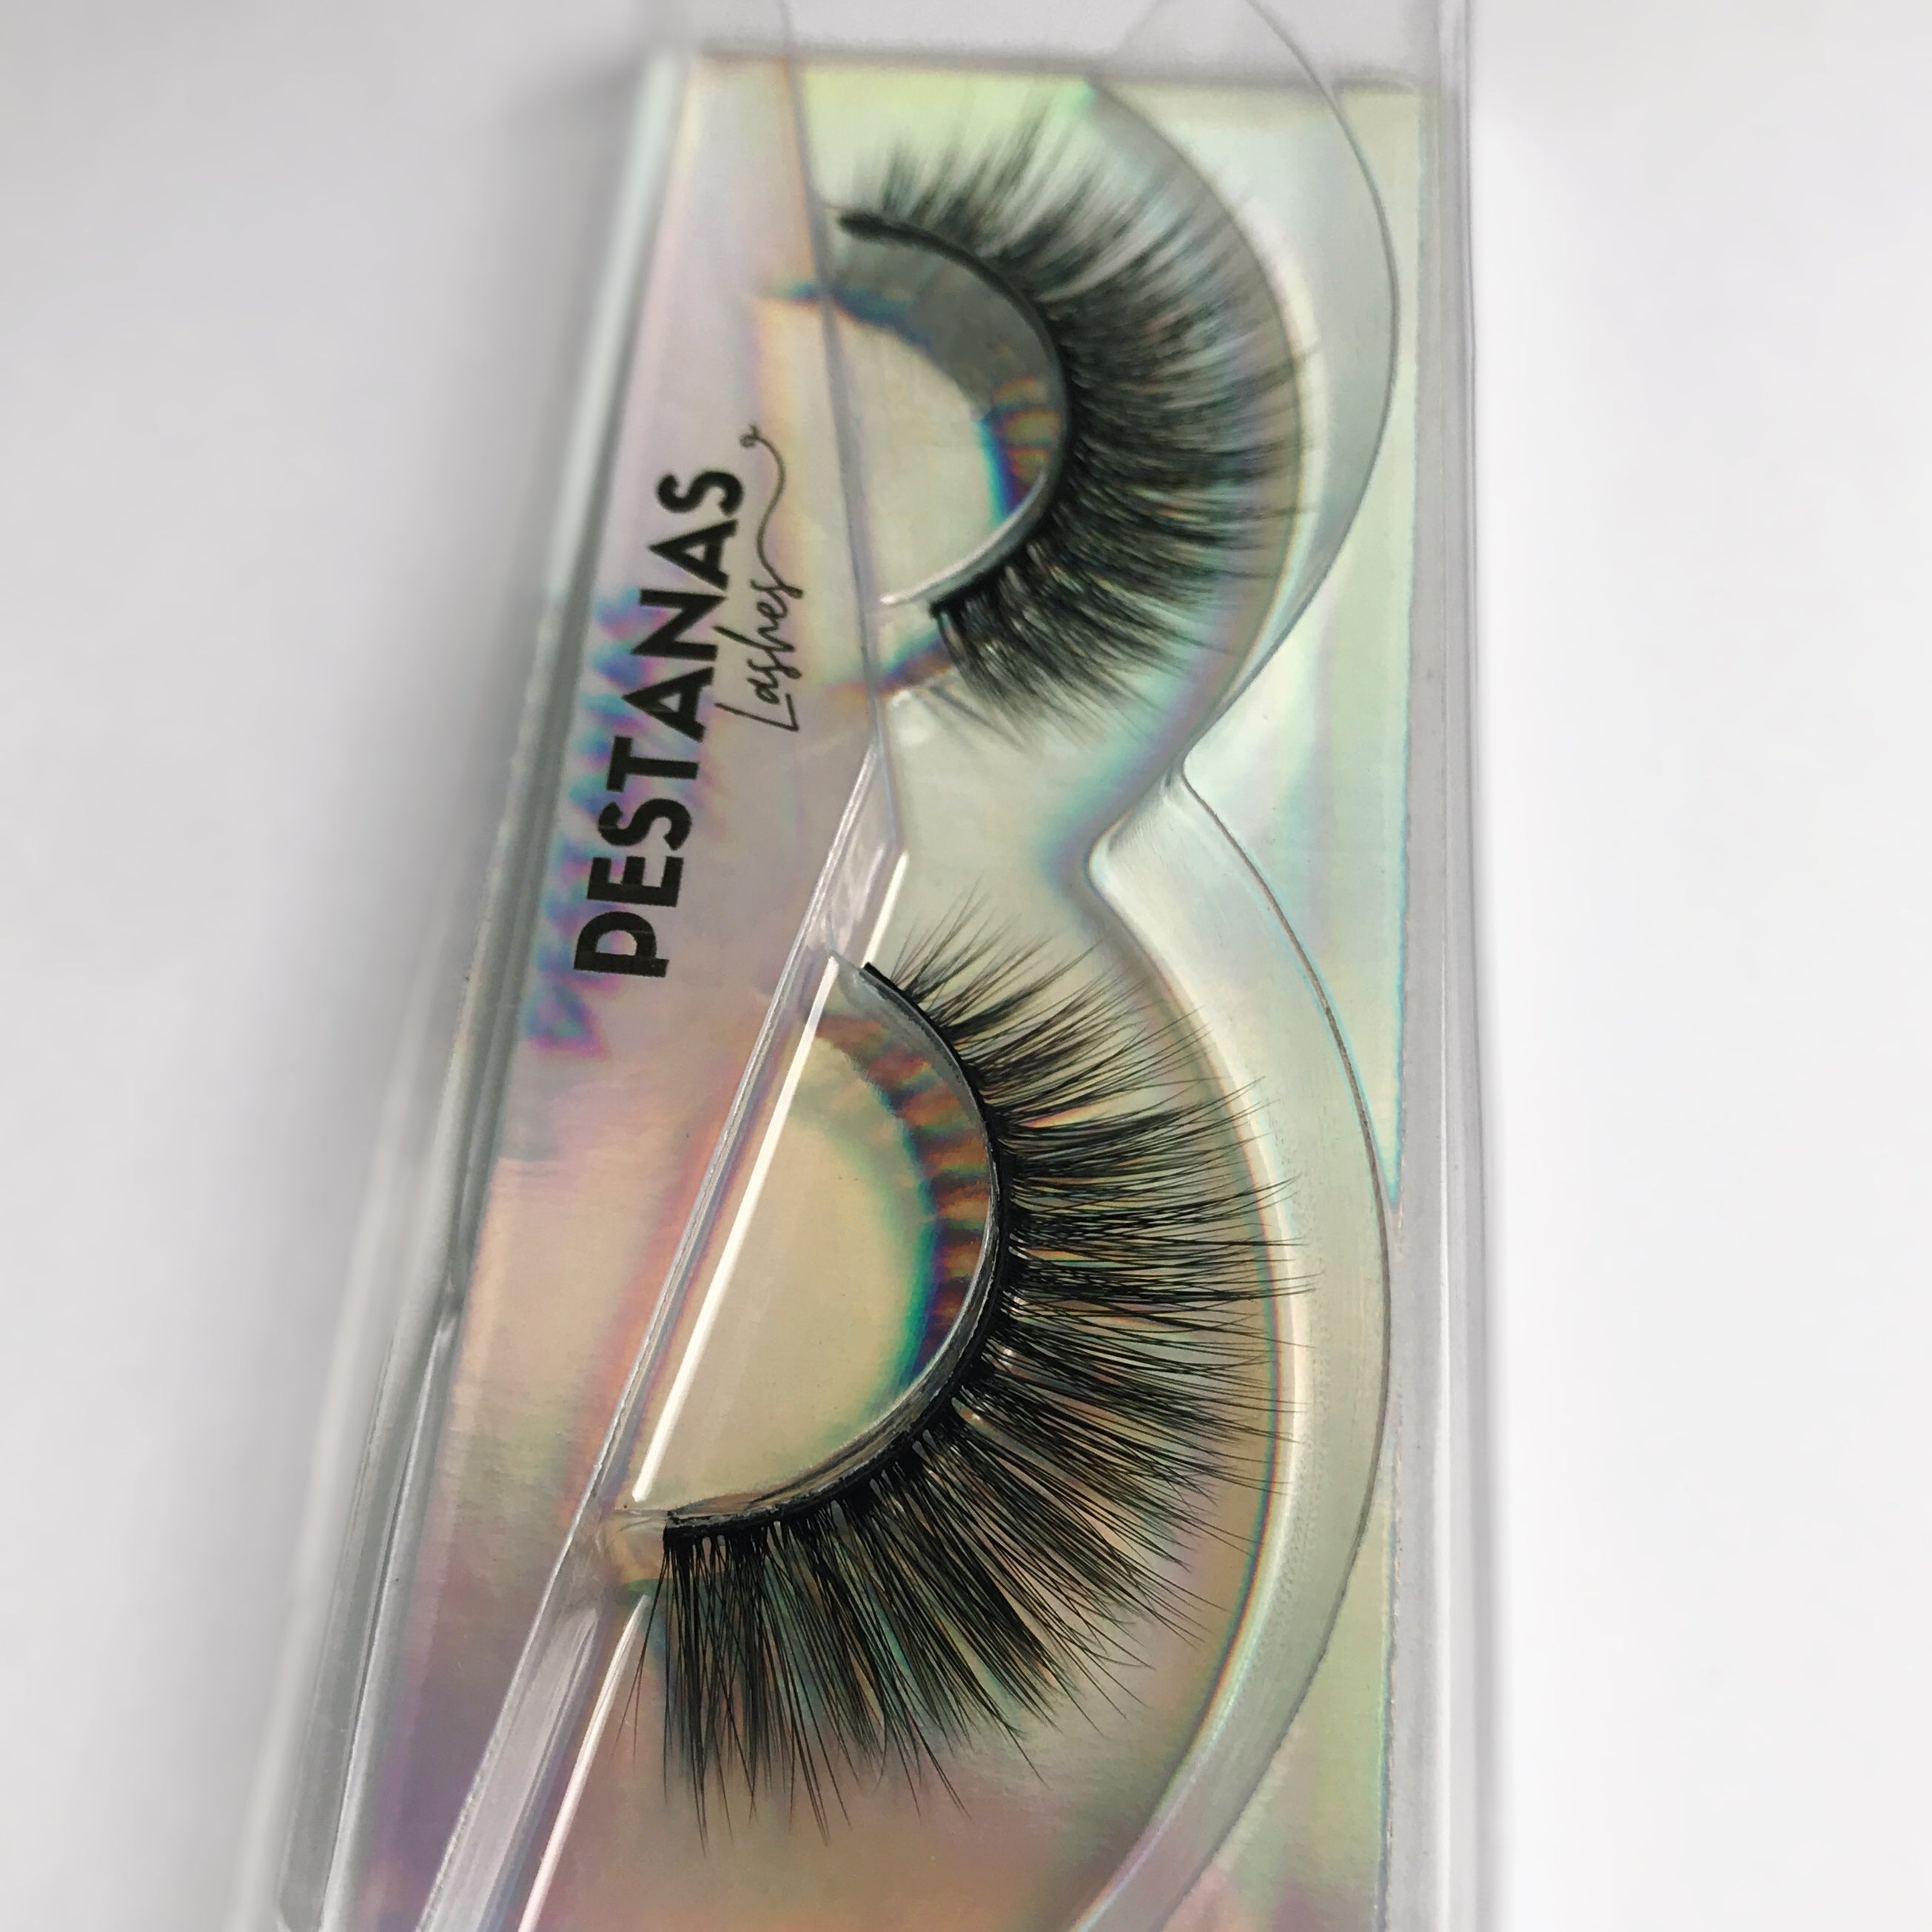 Faux cils Ray of light - naturel belle courbe - bande noire - Pestanas Lashes